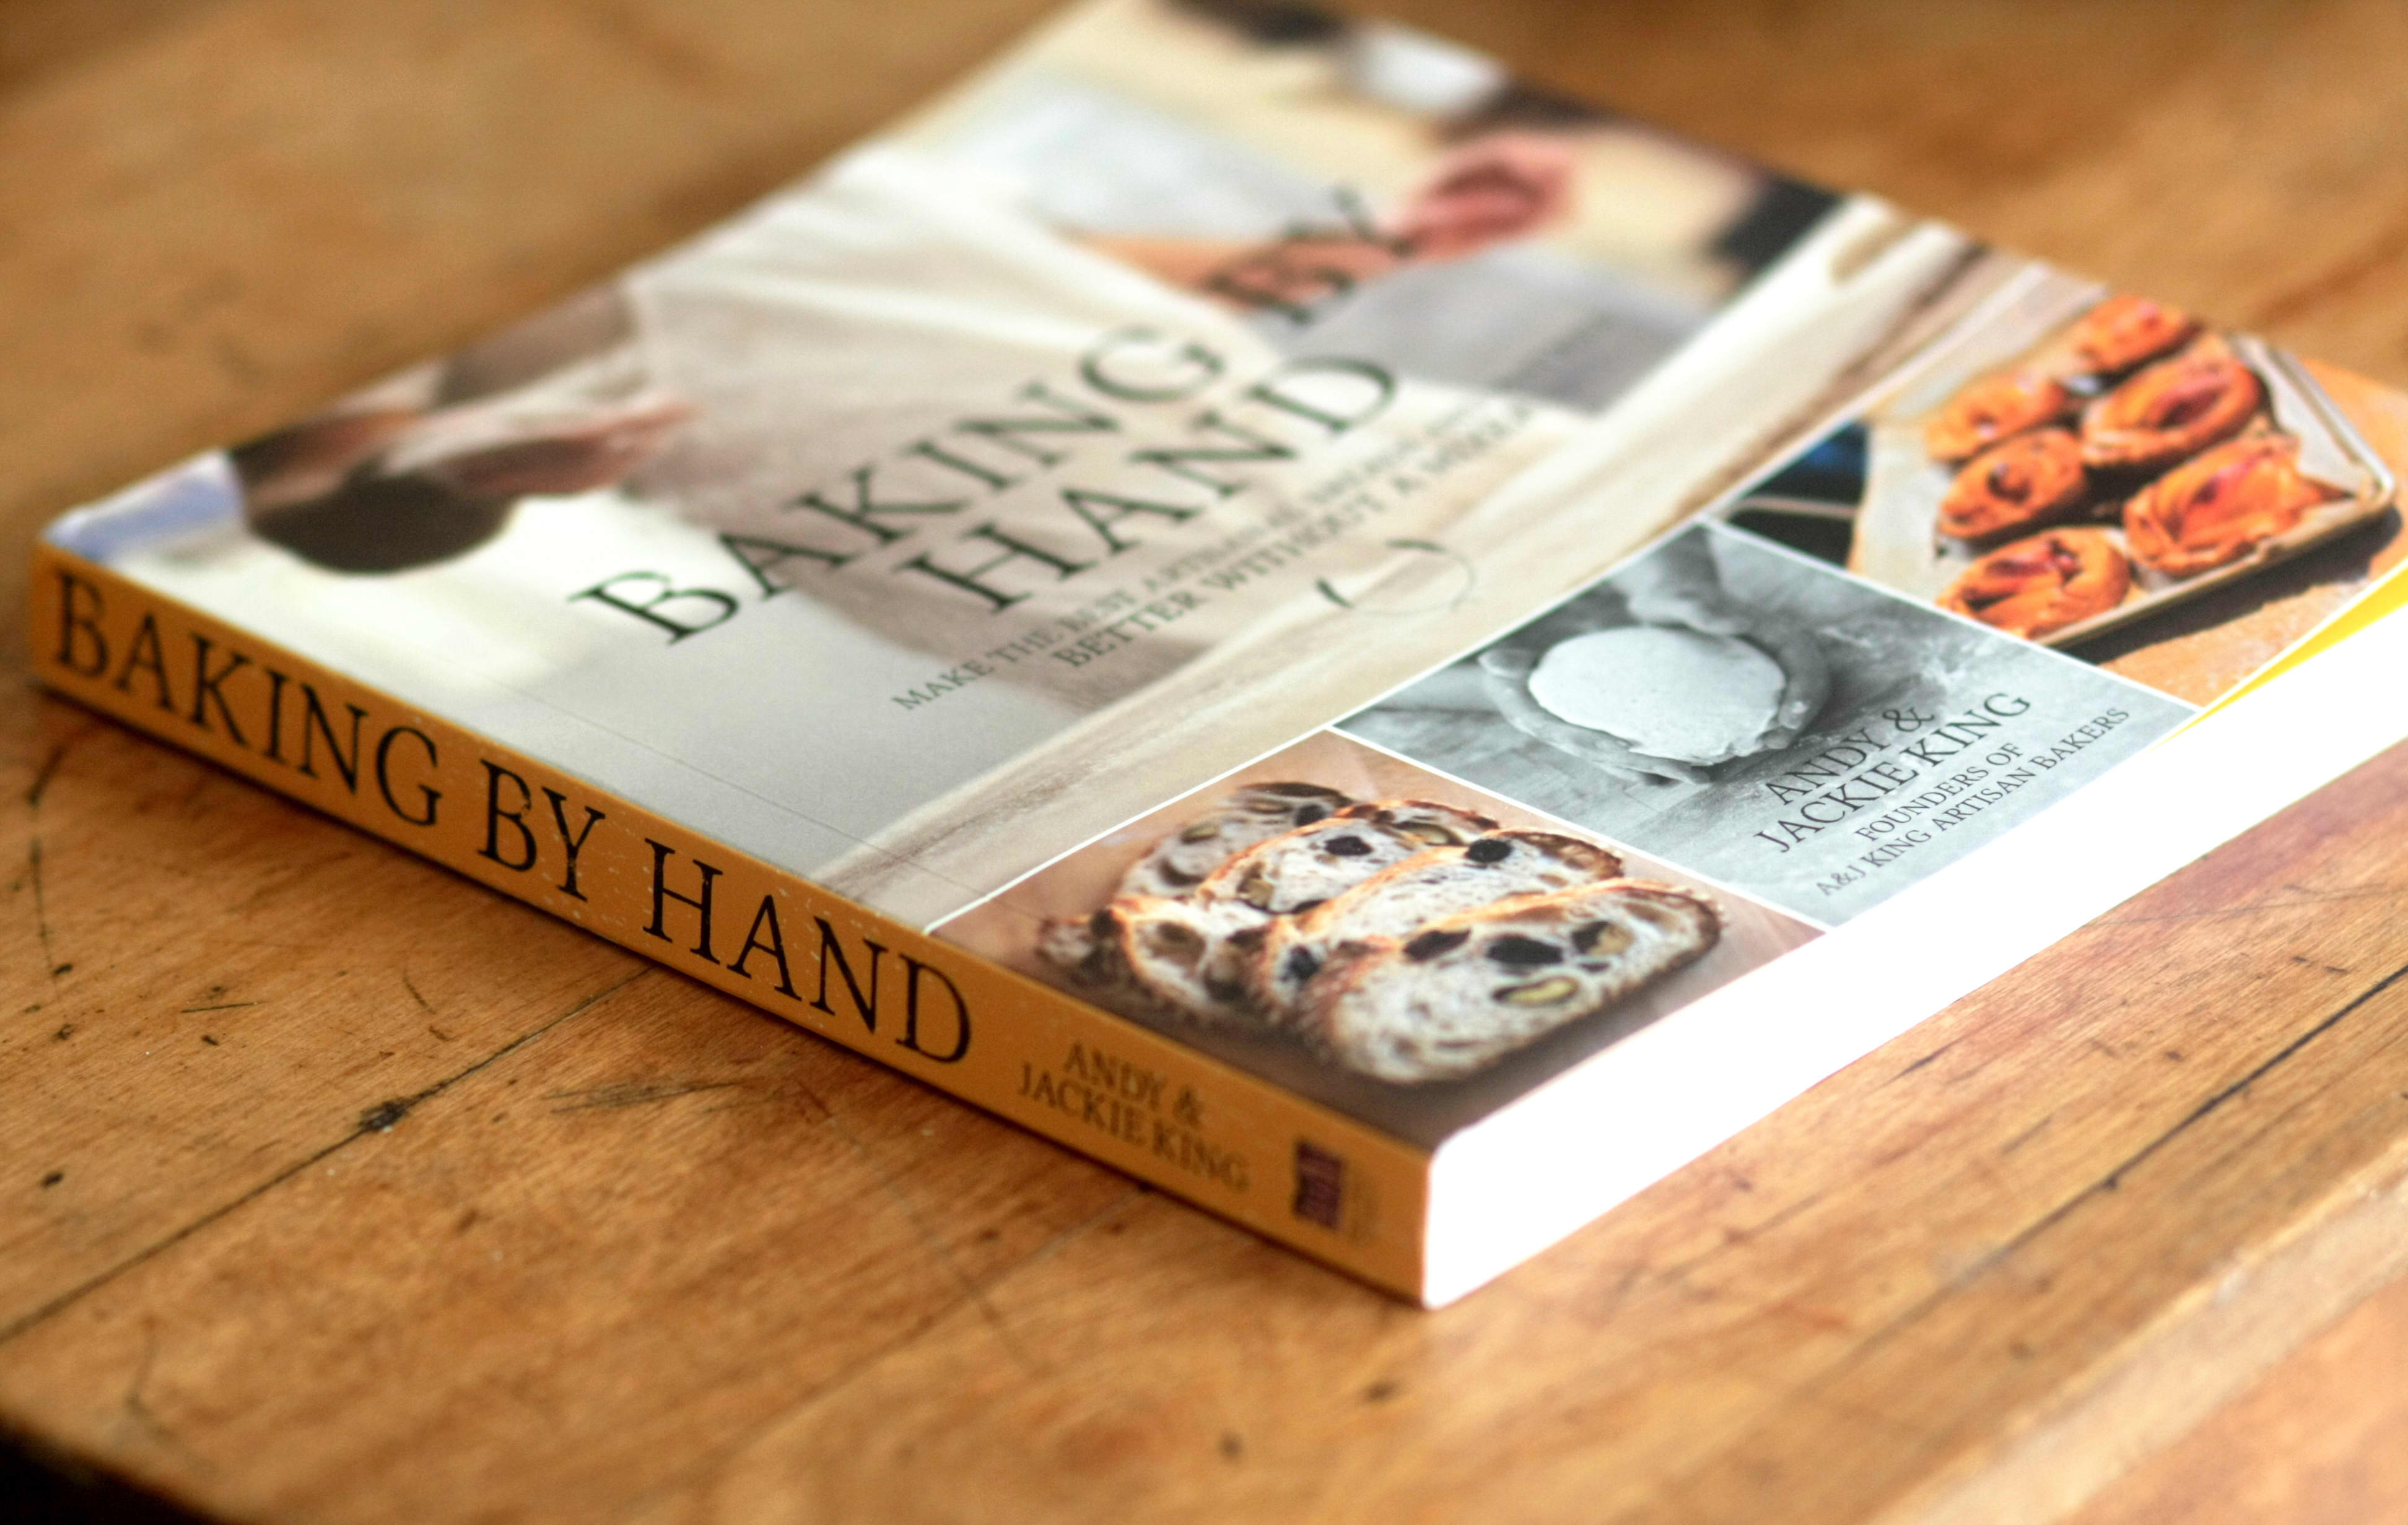 Baking By Hand by Andy & Jackie King